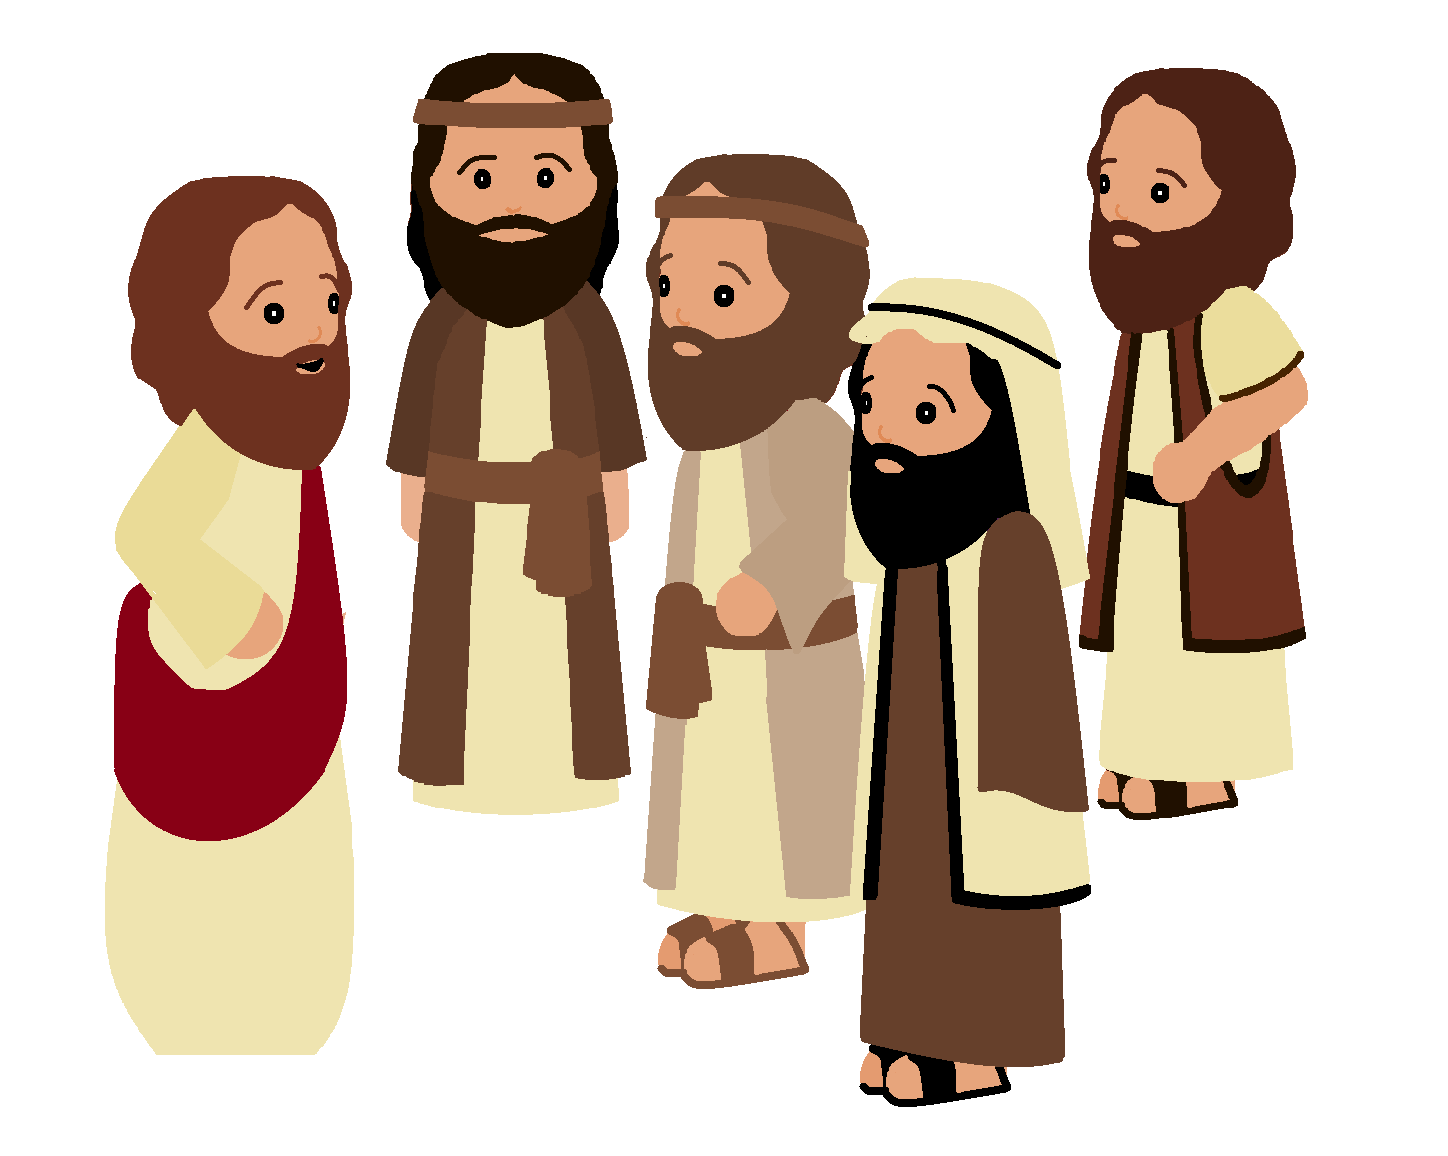 Cute jesus clipart clipart picture black and white download Cute jesus clipart clipart - ClipartFox picture black and white download